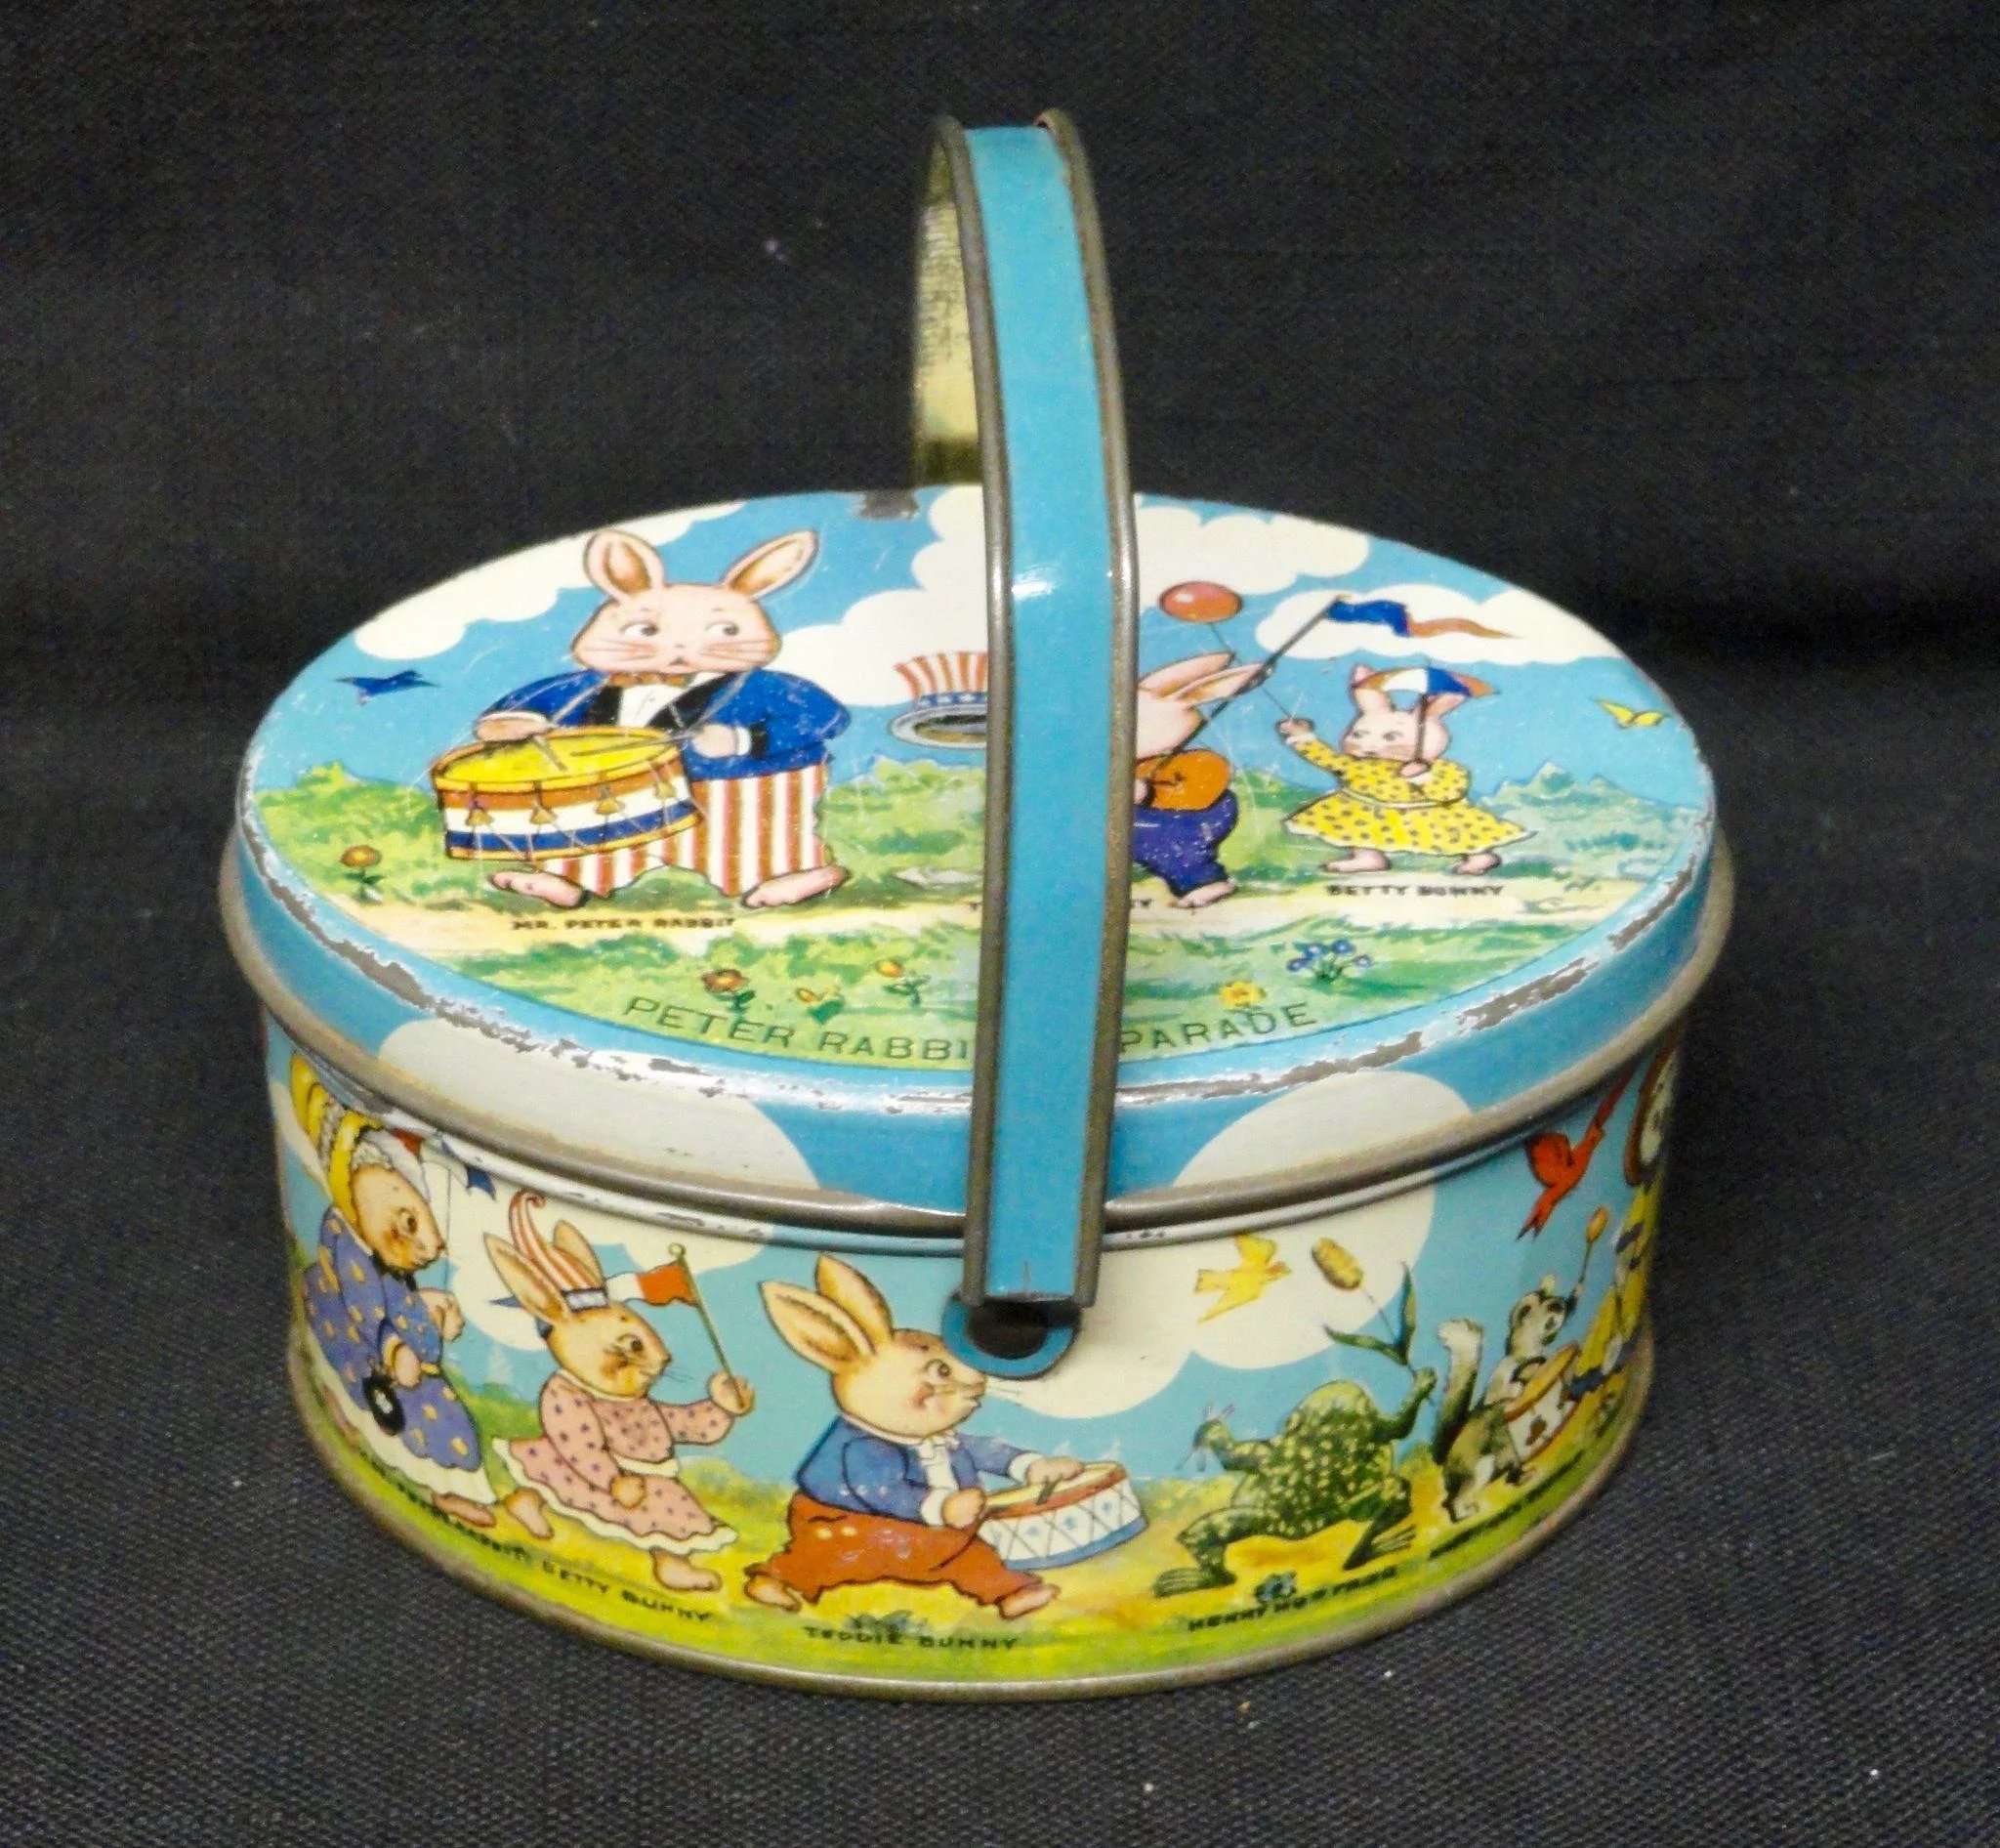 Jack Rabbit Usa >> Tindeco PETER RABBIT July 4 Candy TIN Container : Childhood Antiques | Ruby Lane